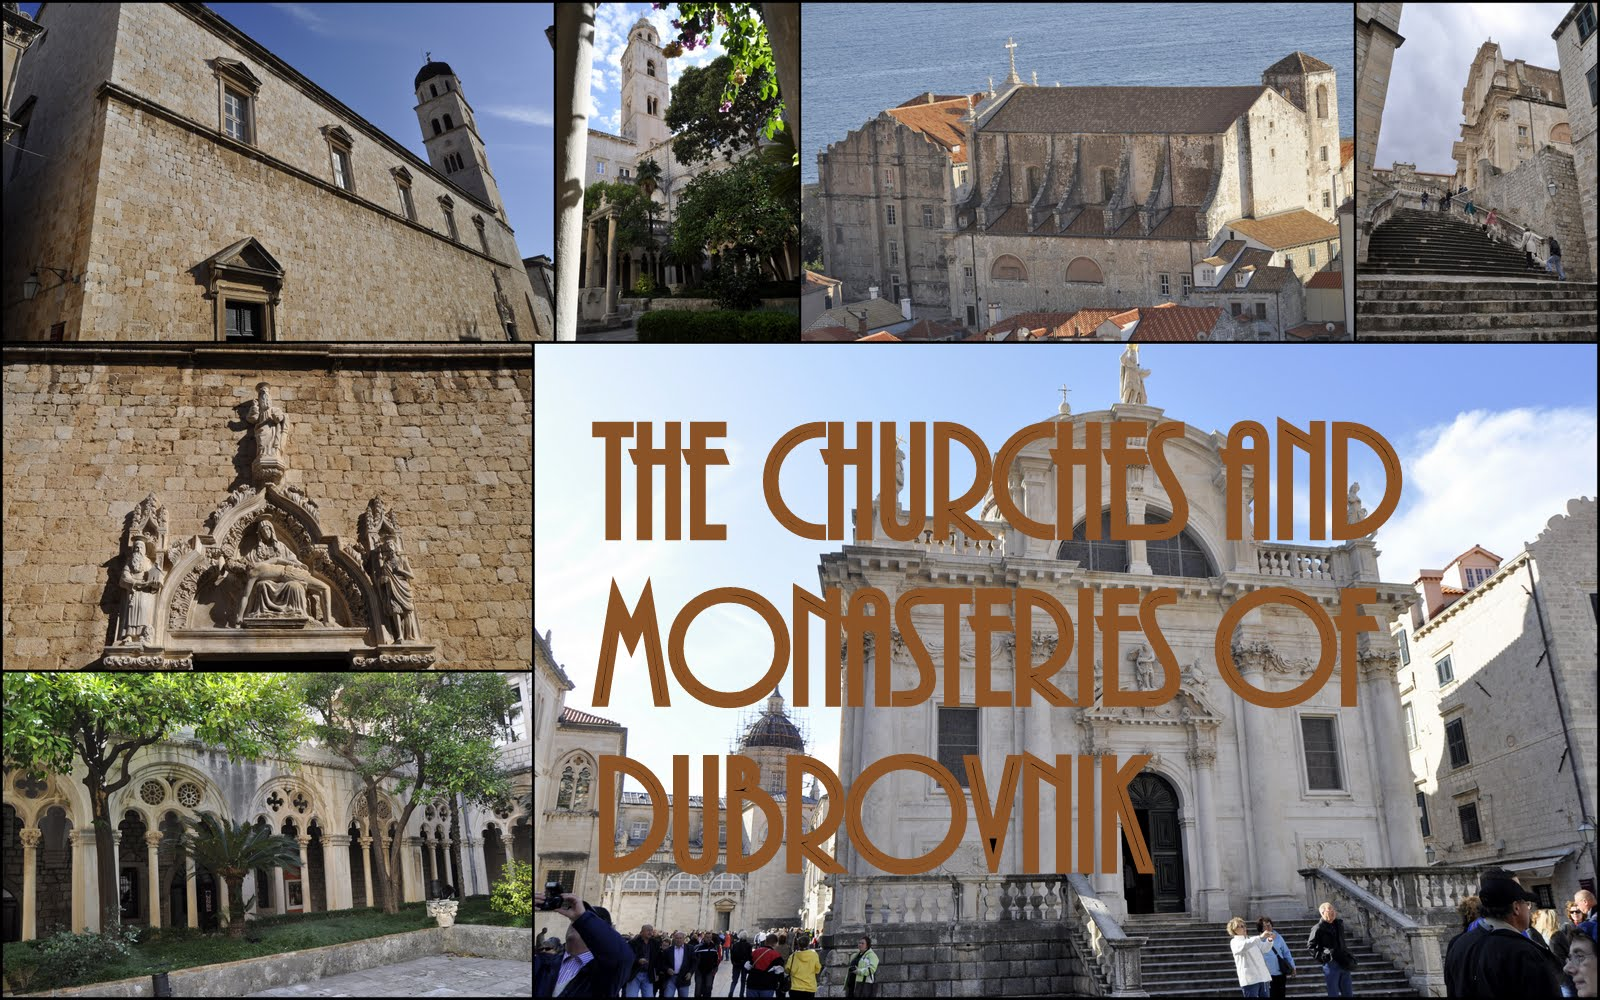 Dubrovnik Churches and Monasteries,